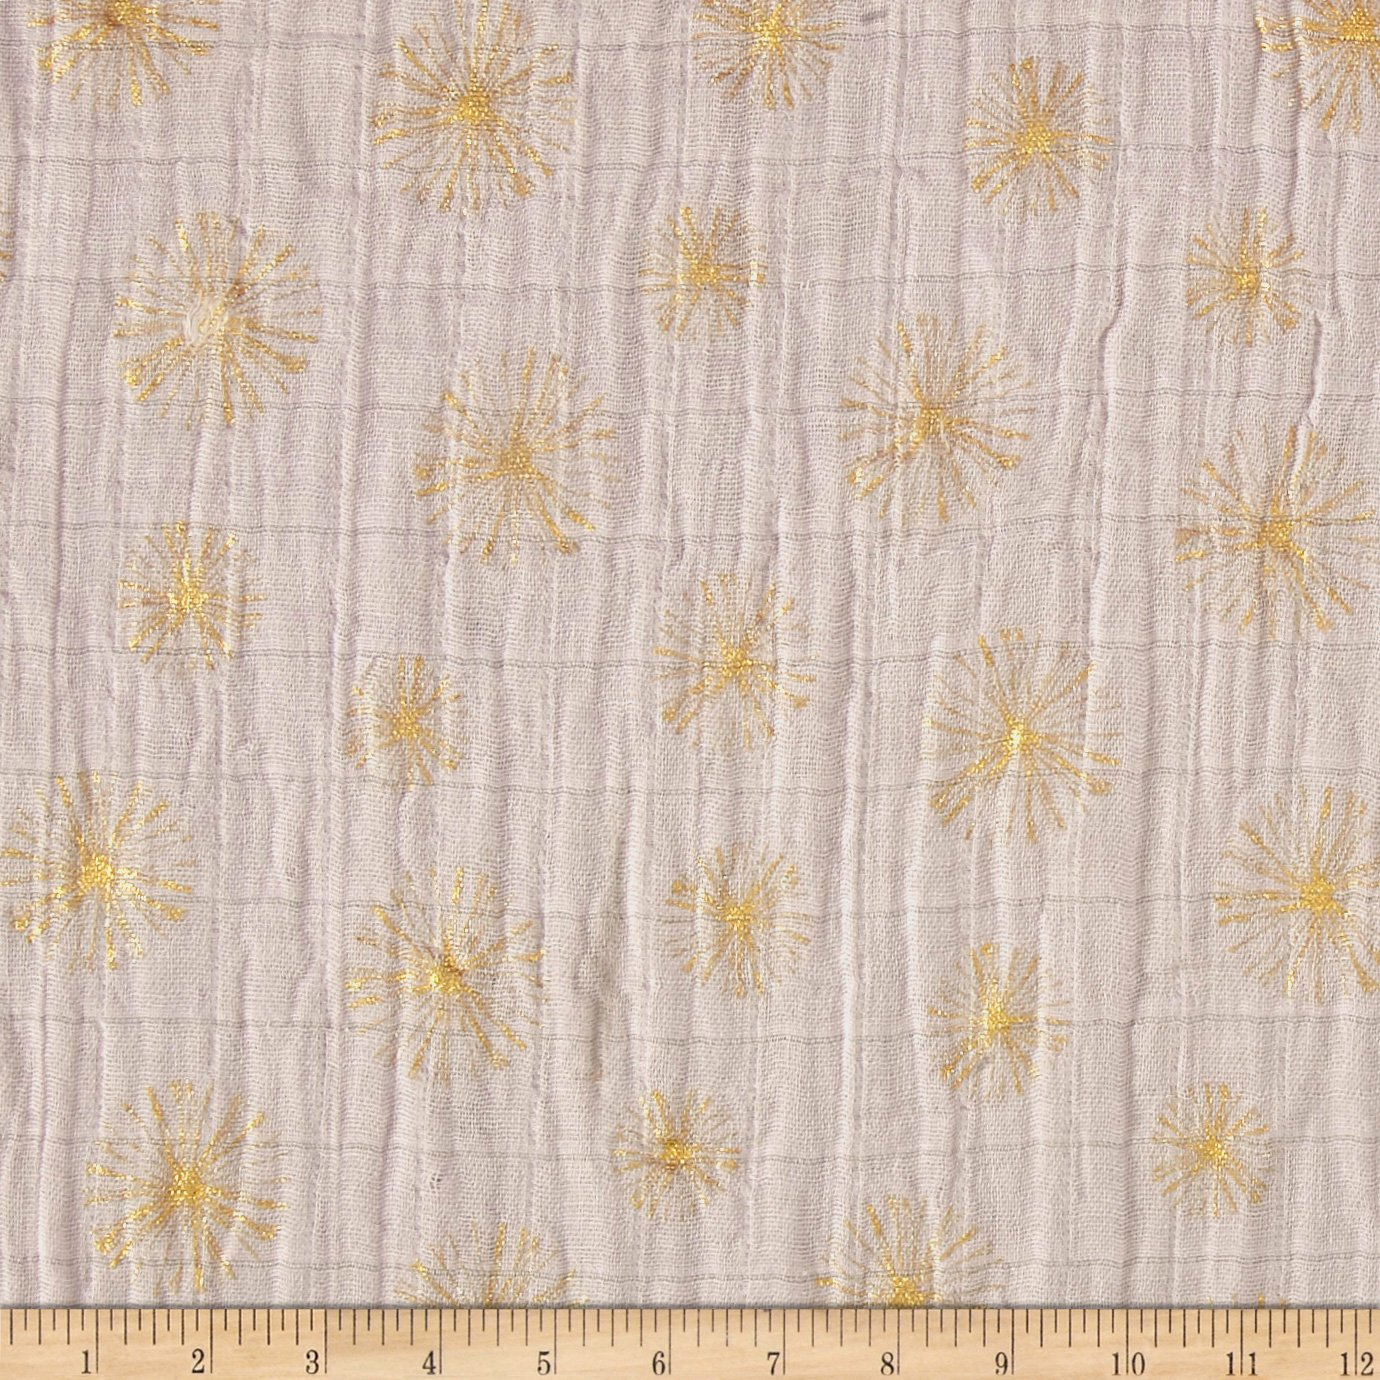 YELLOW Printed MUSLIN Double Gauze Cotton Fabric Cloth MOUSE